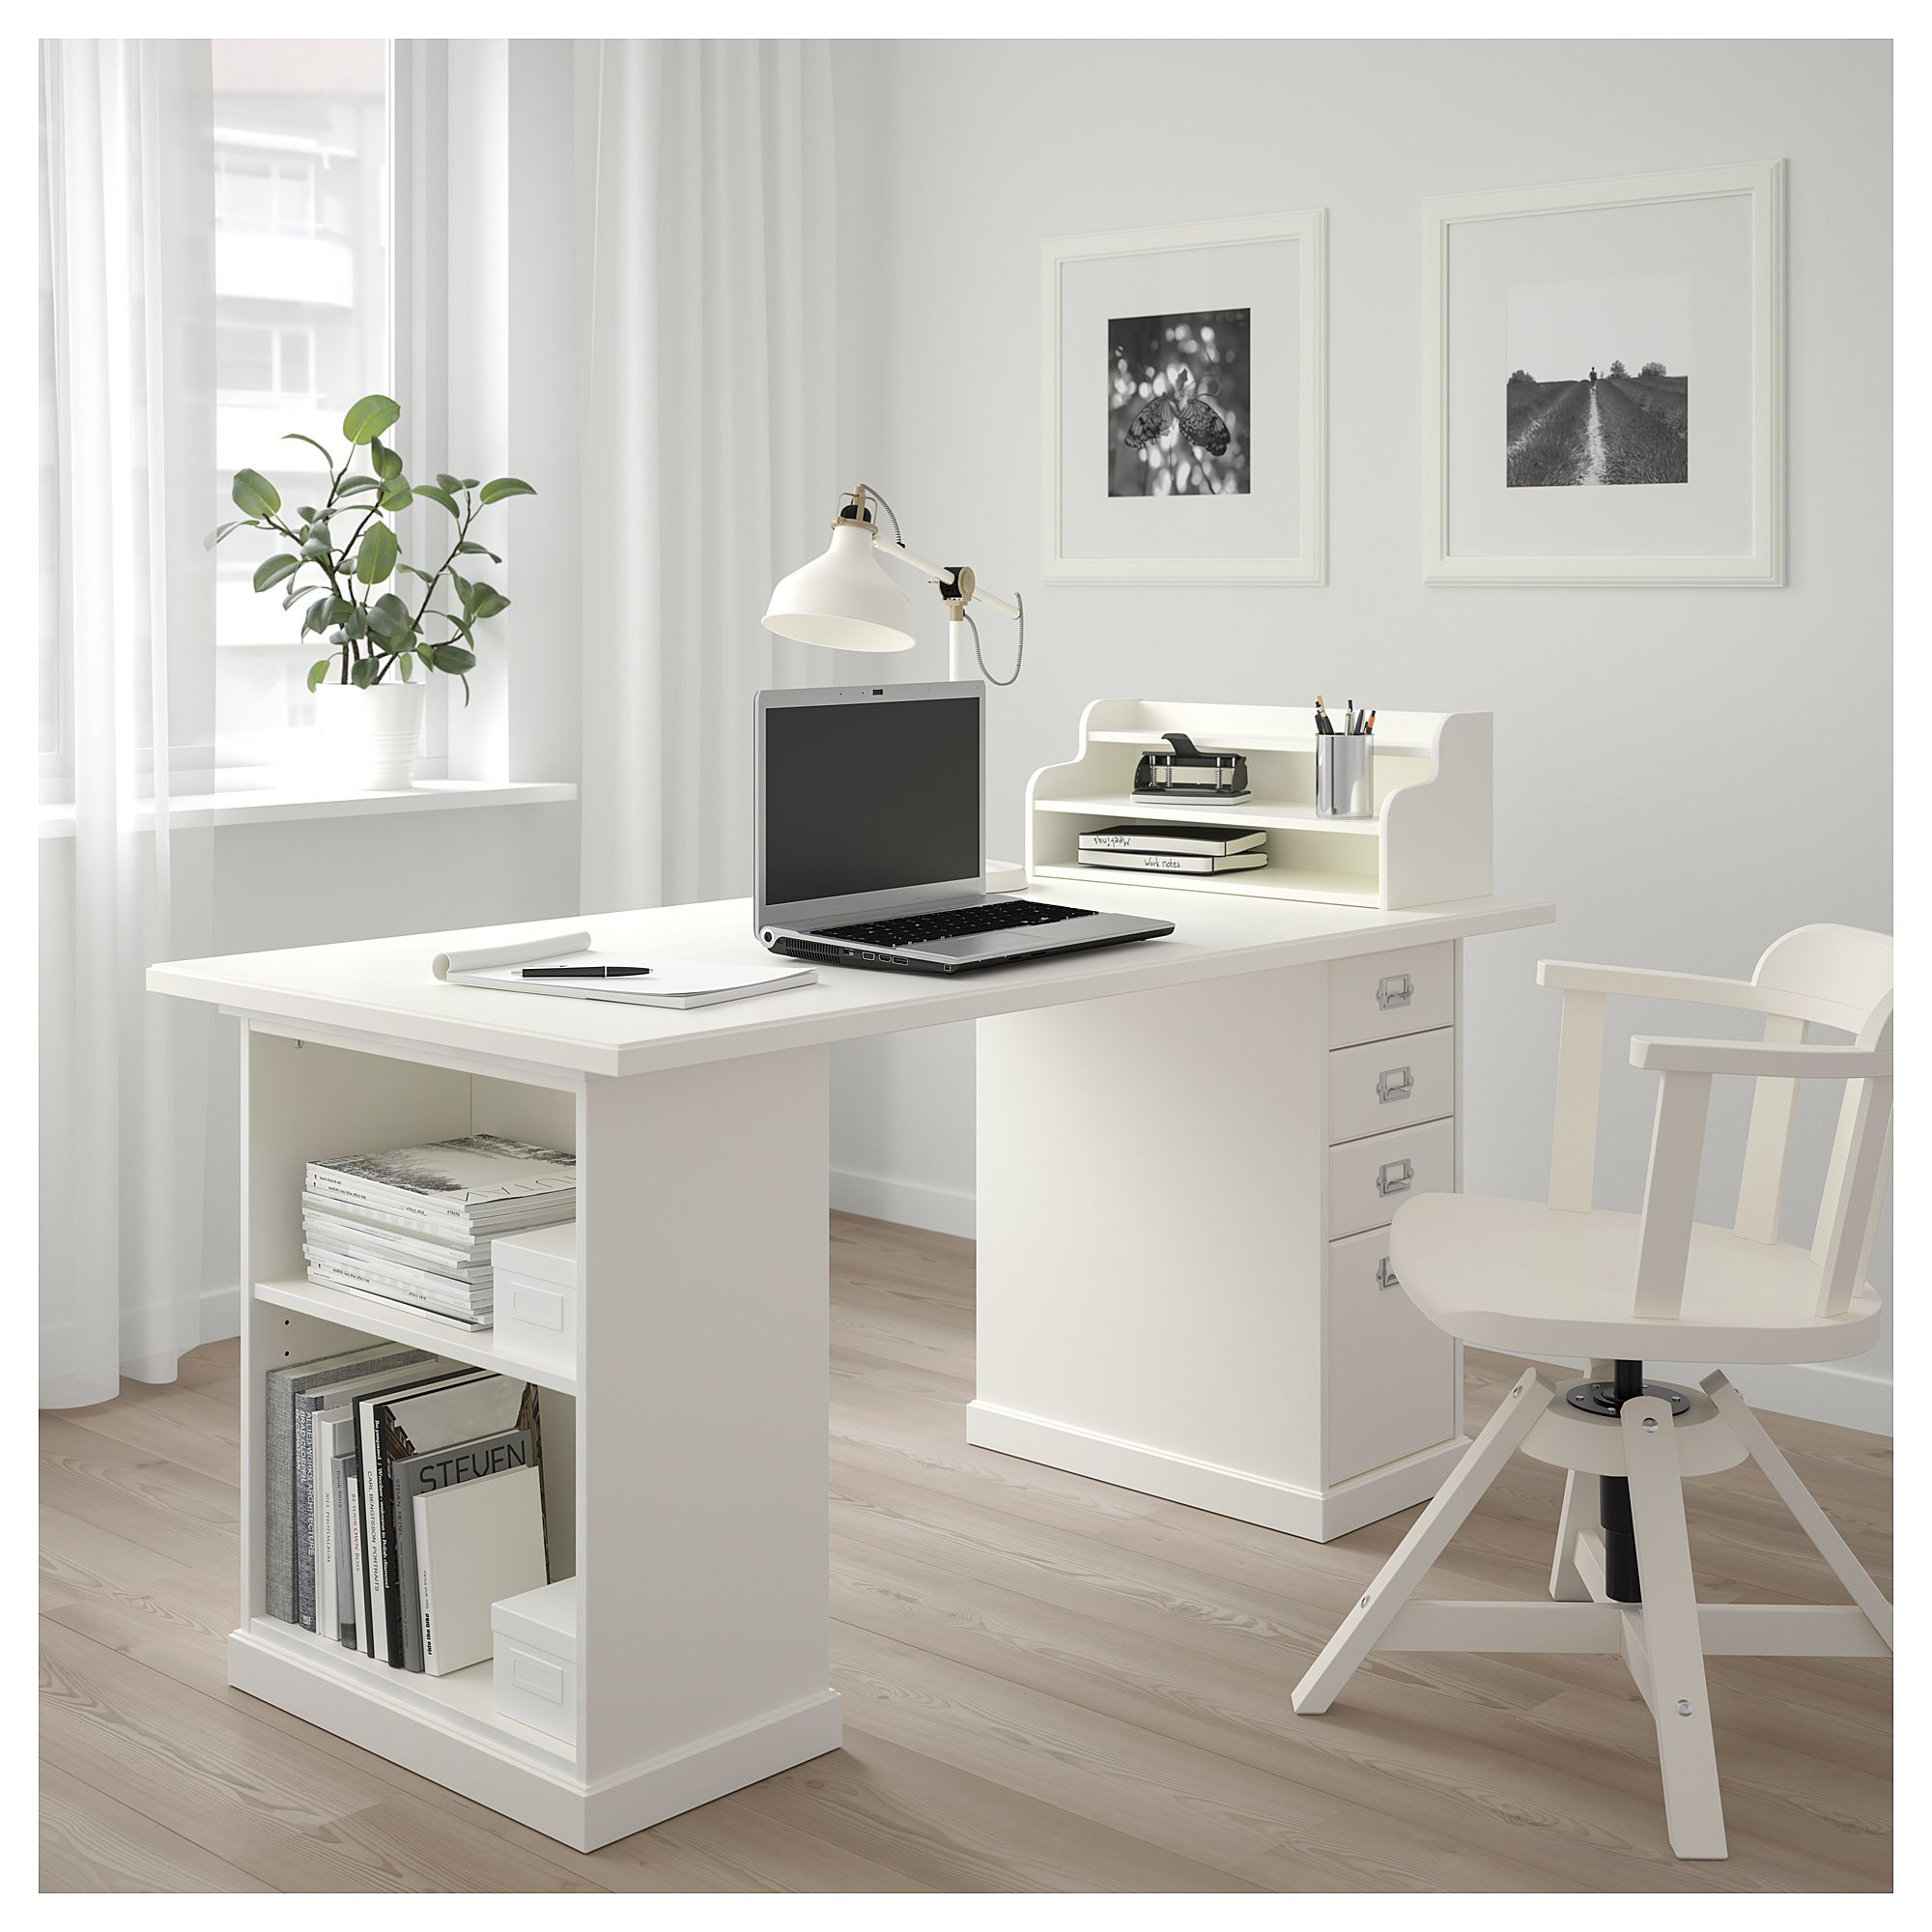 Klimpen Table Gray Light Gray 150x75 Cm Shop Ikea Ca Ikea Home Office Furniture Cheap Office Furniture Home Office Design